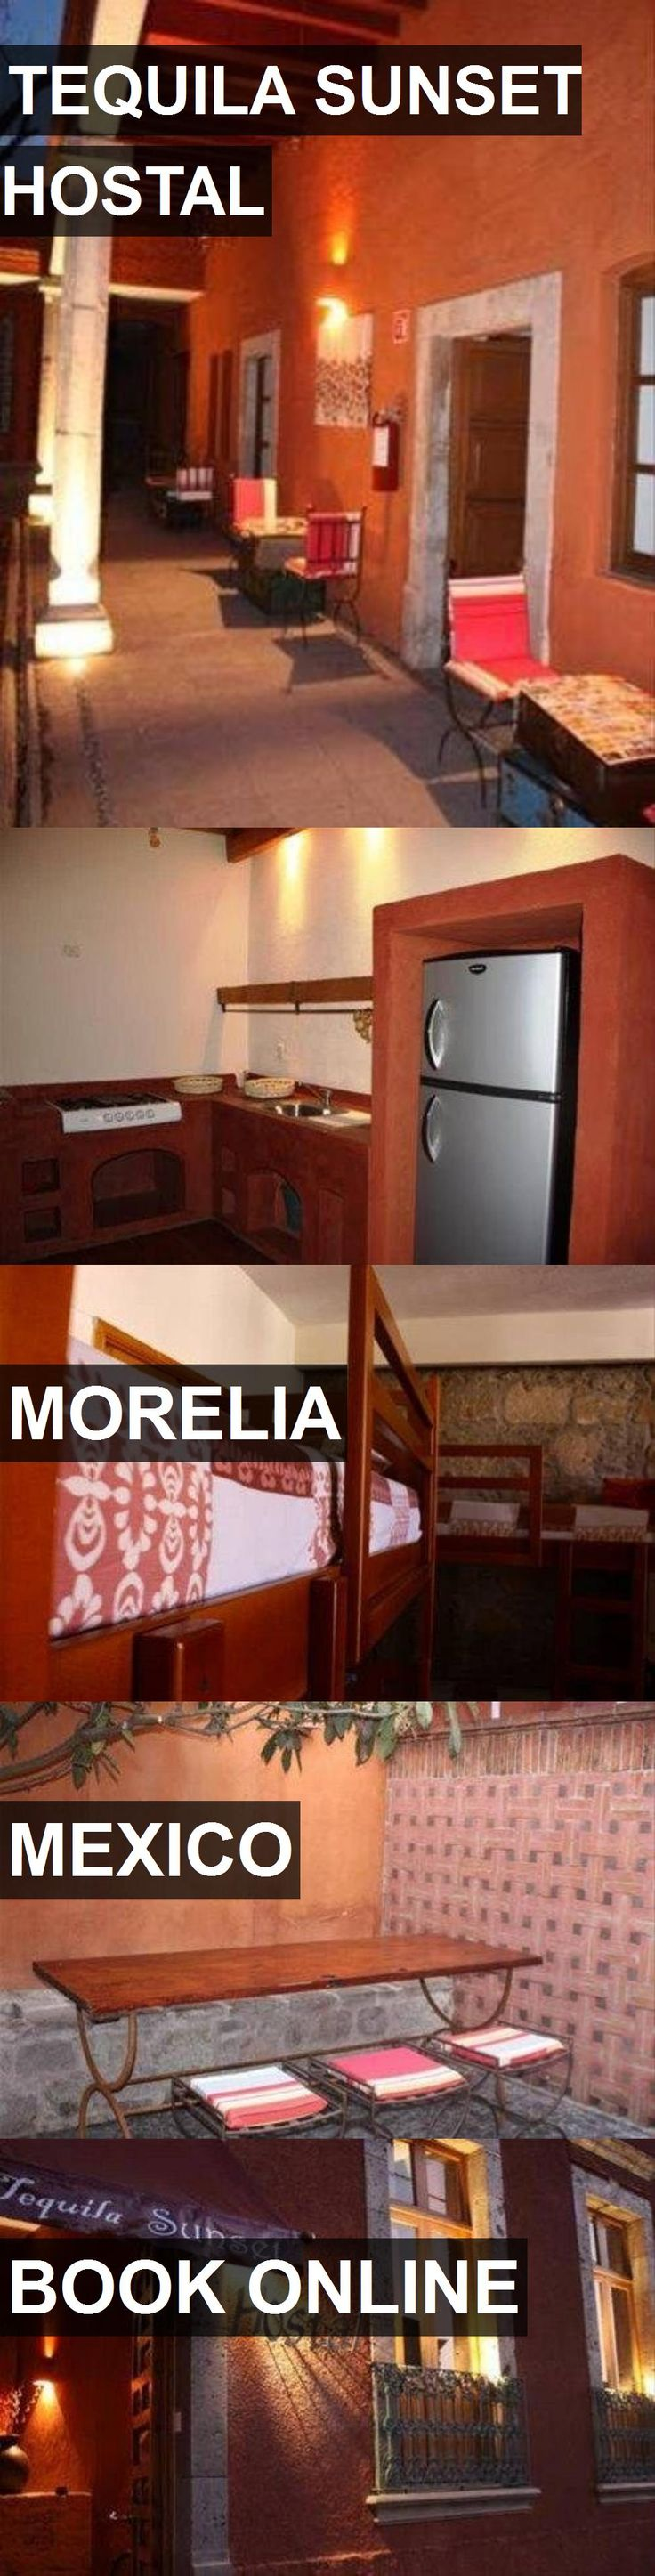 Hotel TEQUILA SUNSET HOSTAL in Morelia, Mexico. For more information, photos, reviews and best prices please follow the link. #Mexico #Morelia #TEQUILASUNSETHOSTAL #hotel #travel #vacation